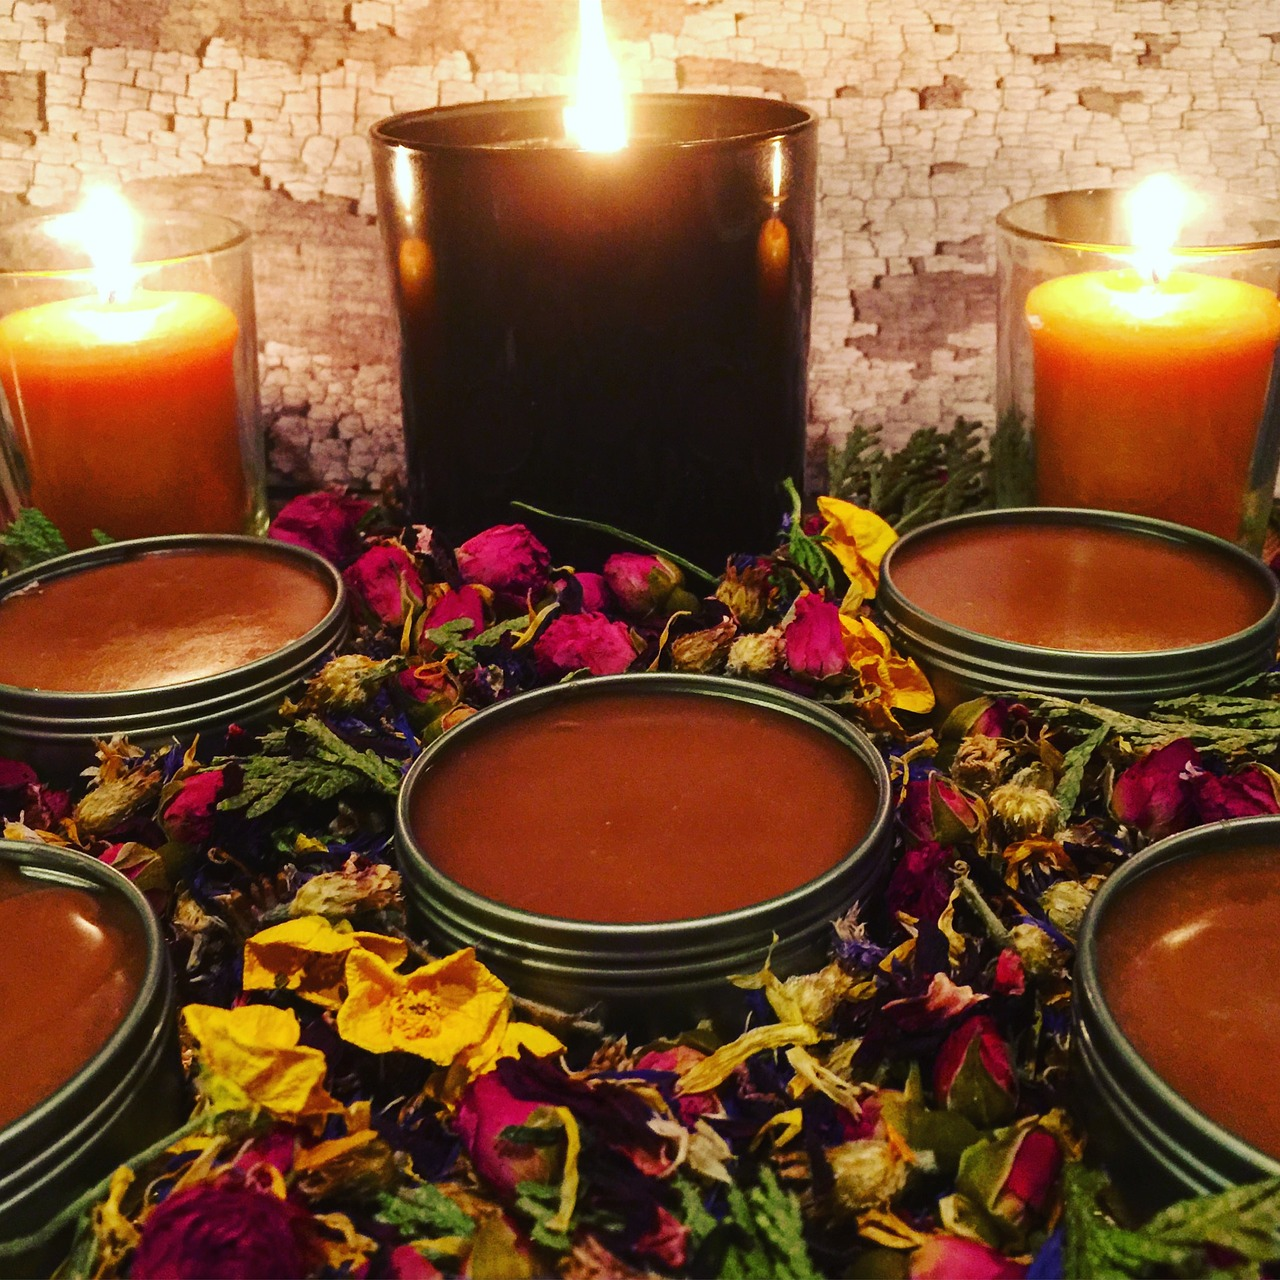 Some herbal preparations, like these salves, can be created using both herbs and essential oils for exceptional efficacy.